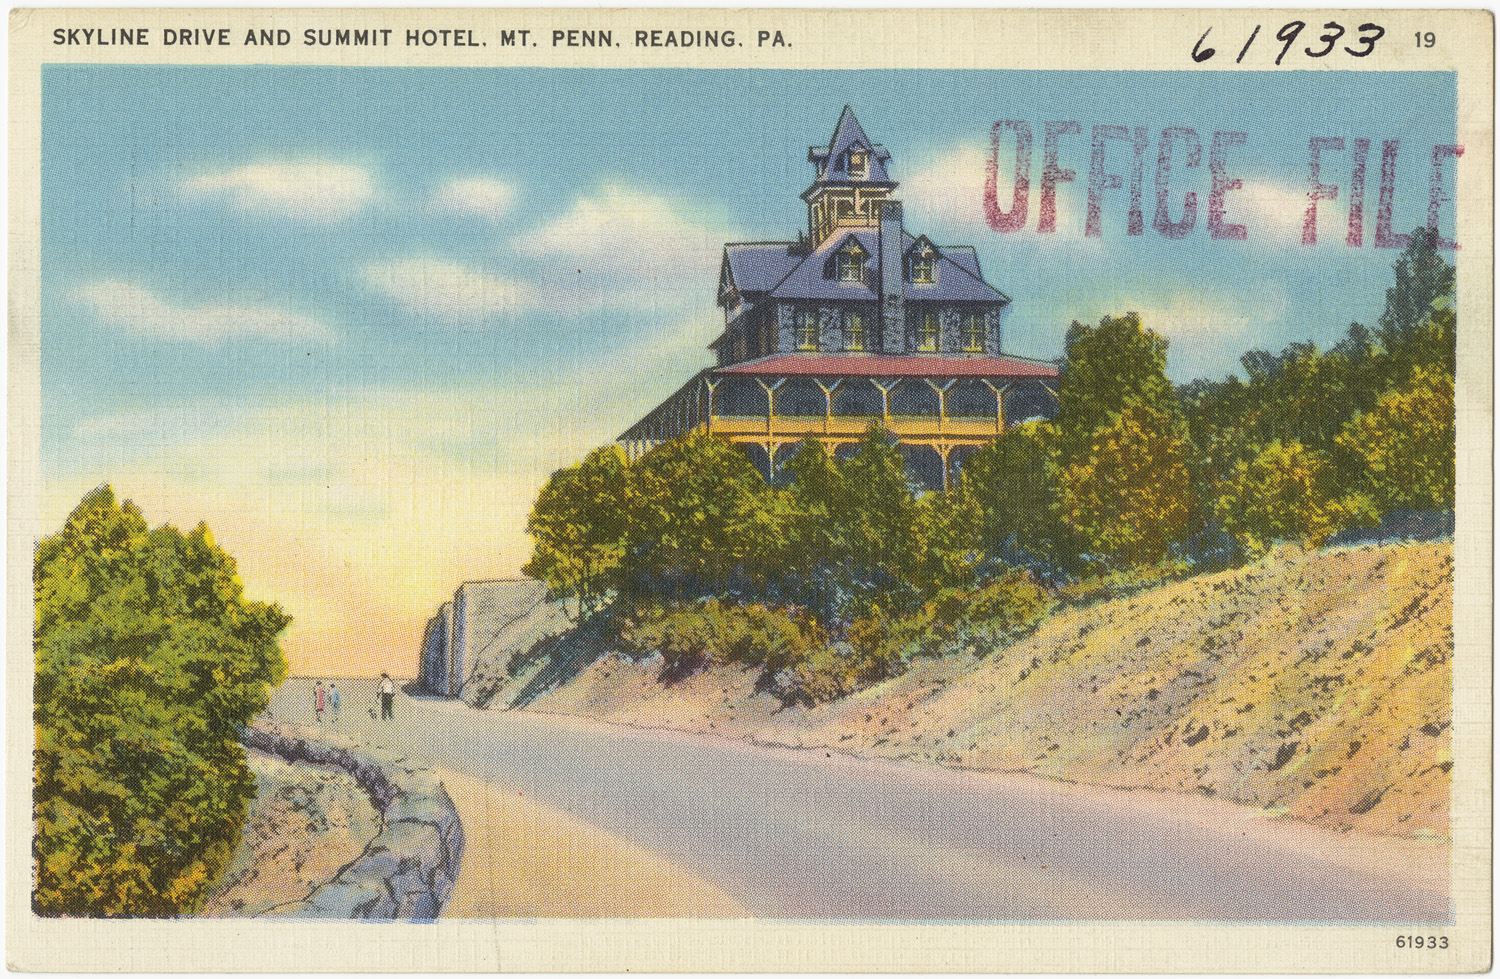 Hotels In Boston >> Skyline Drive and Summit Hotel, MT. Penn., Reading, PA ...